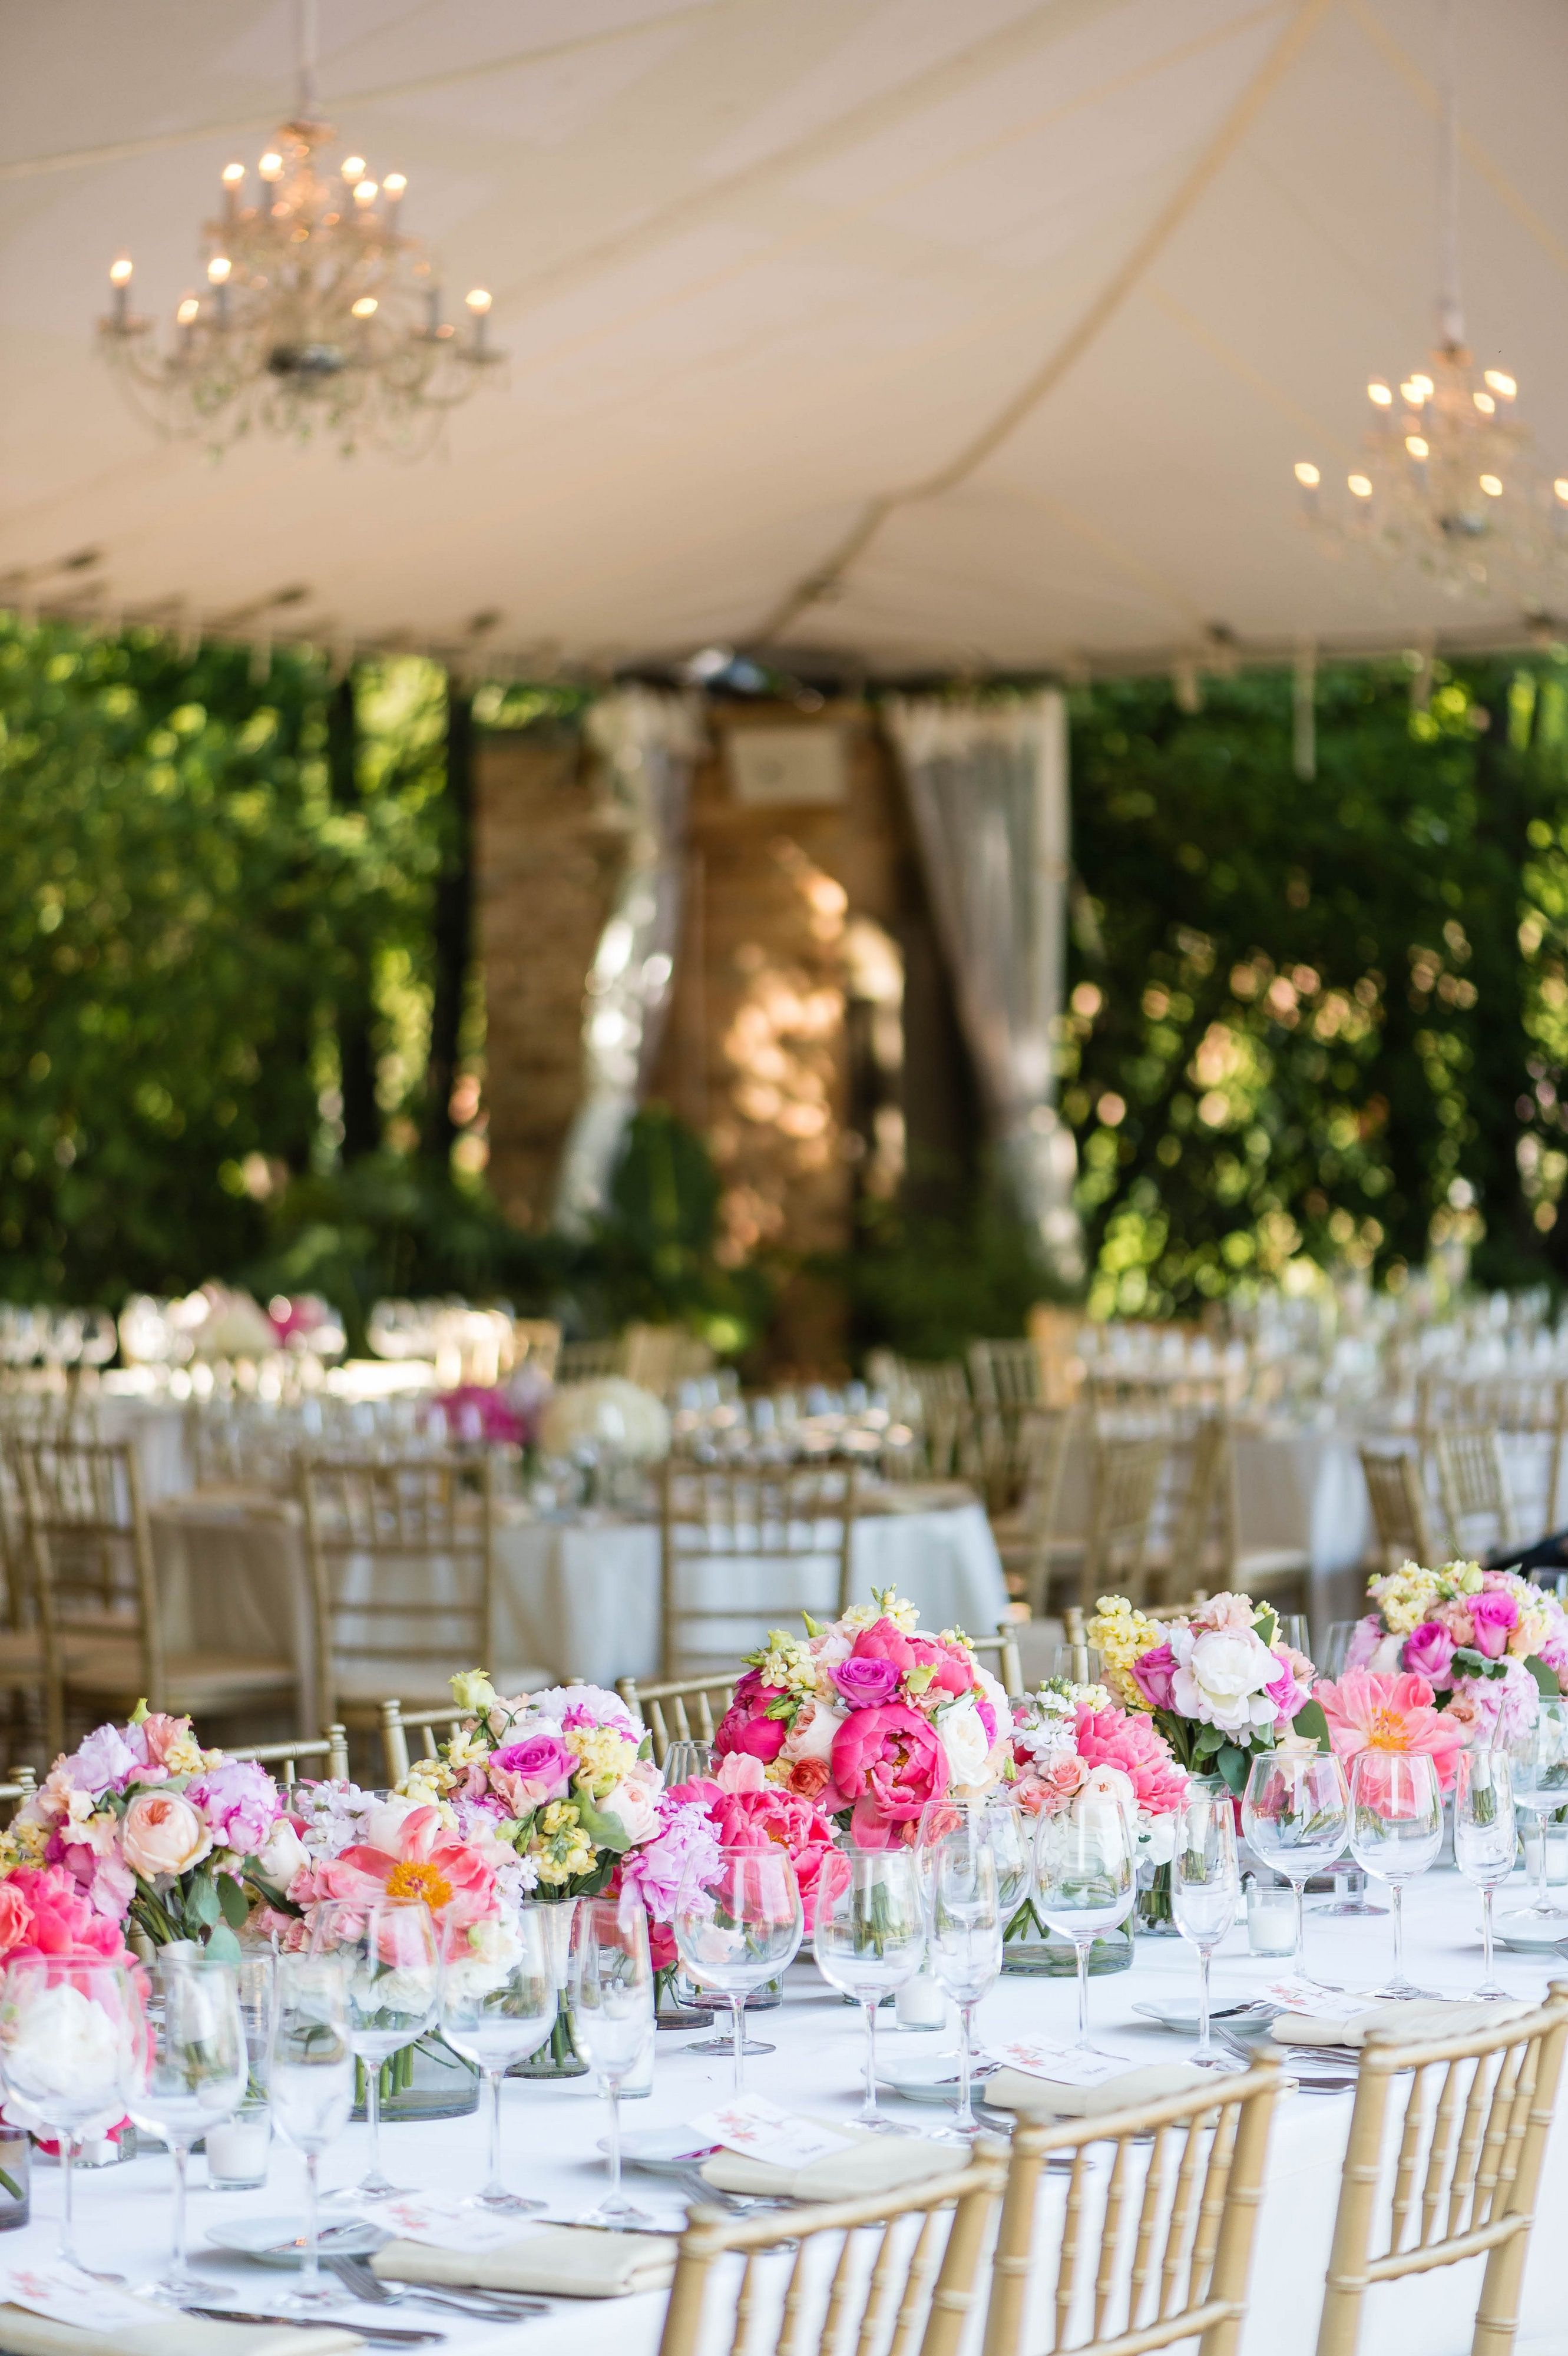 Colorful Wedding Centerpieces By Life In Bloom At The Chicago